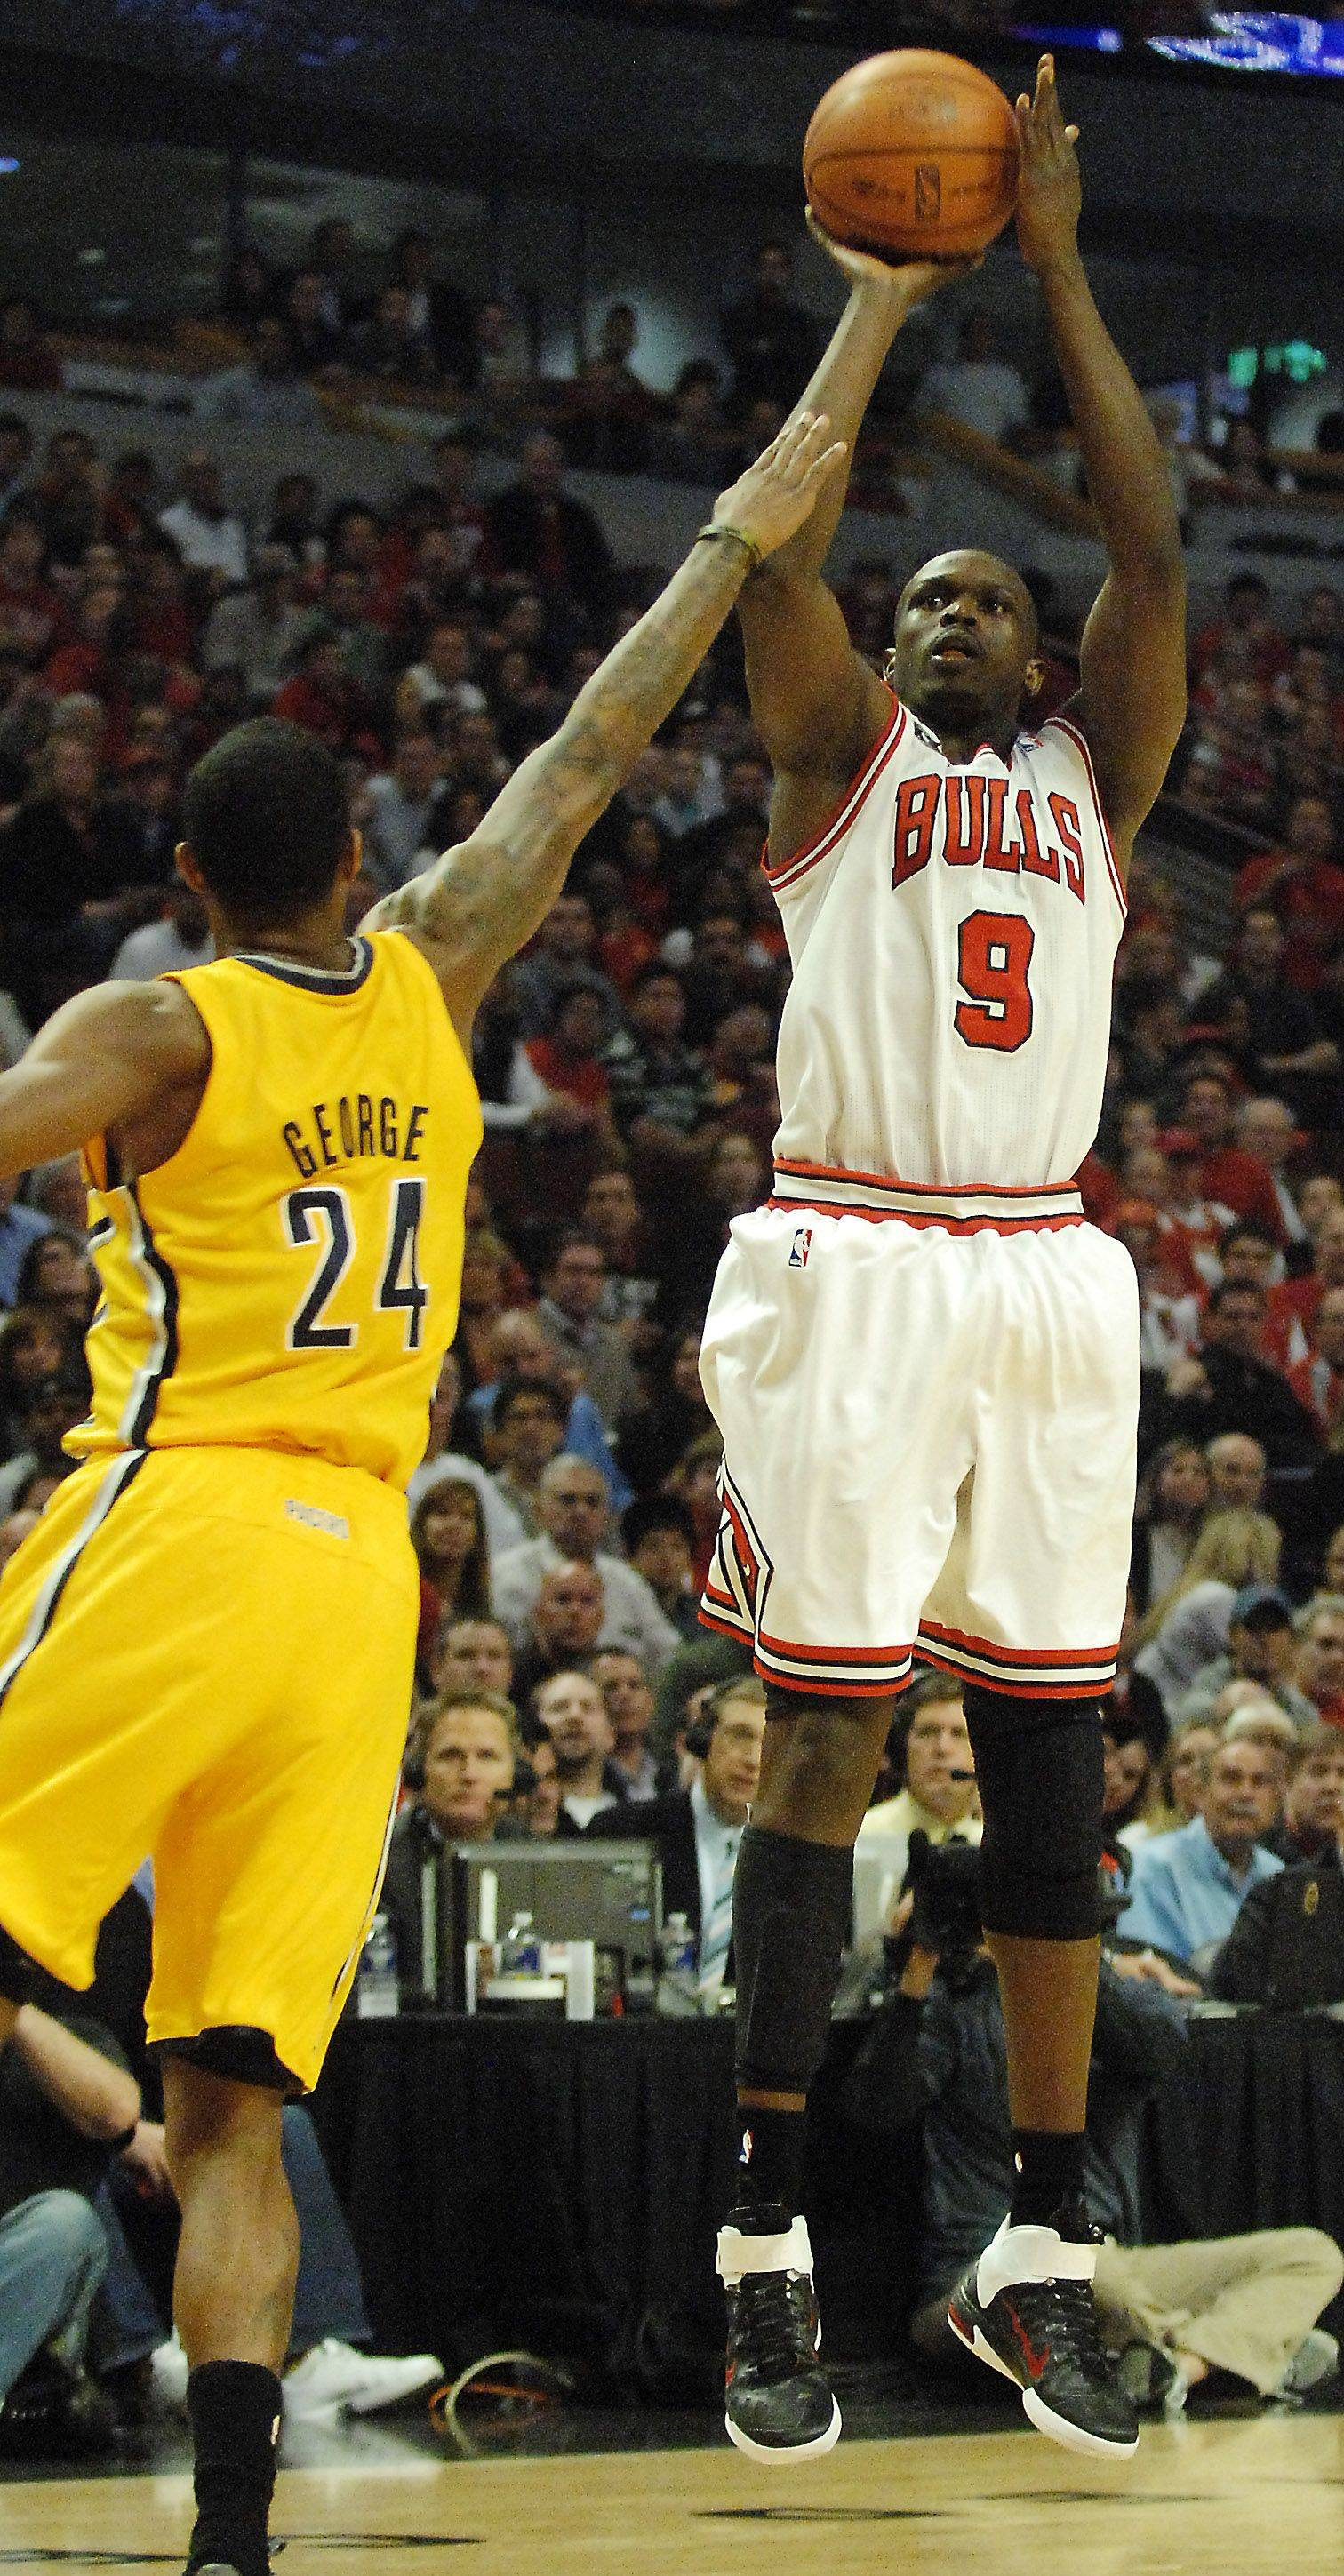 The Bulls' Luol Deng, here firing in 2 of his 24 points Tuesday night against the Pacers at the United Center, made sure Derrick Rose had plenty of support.